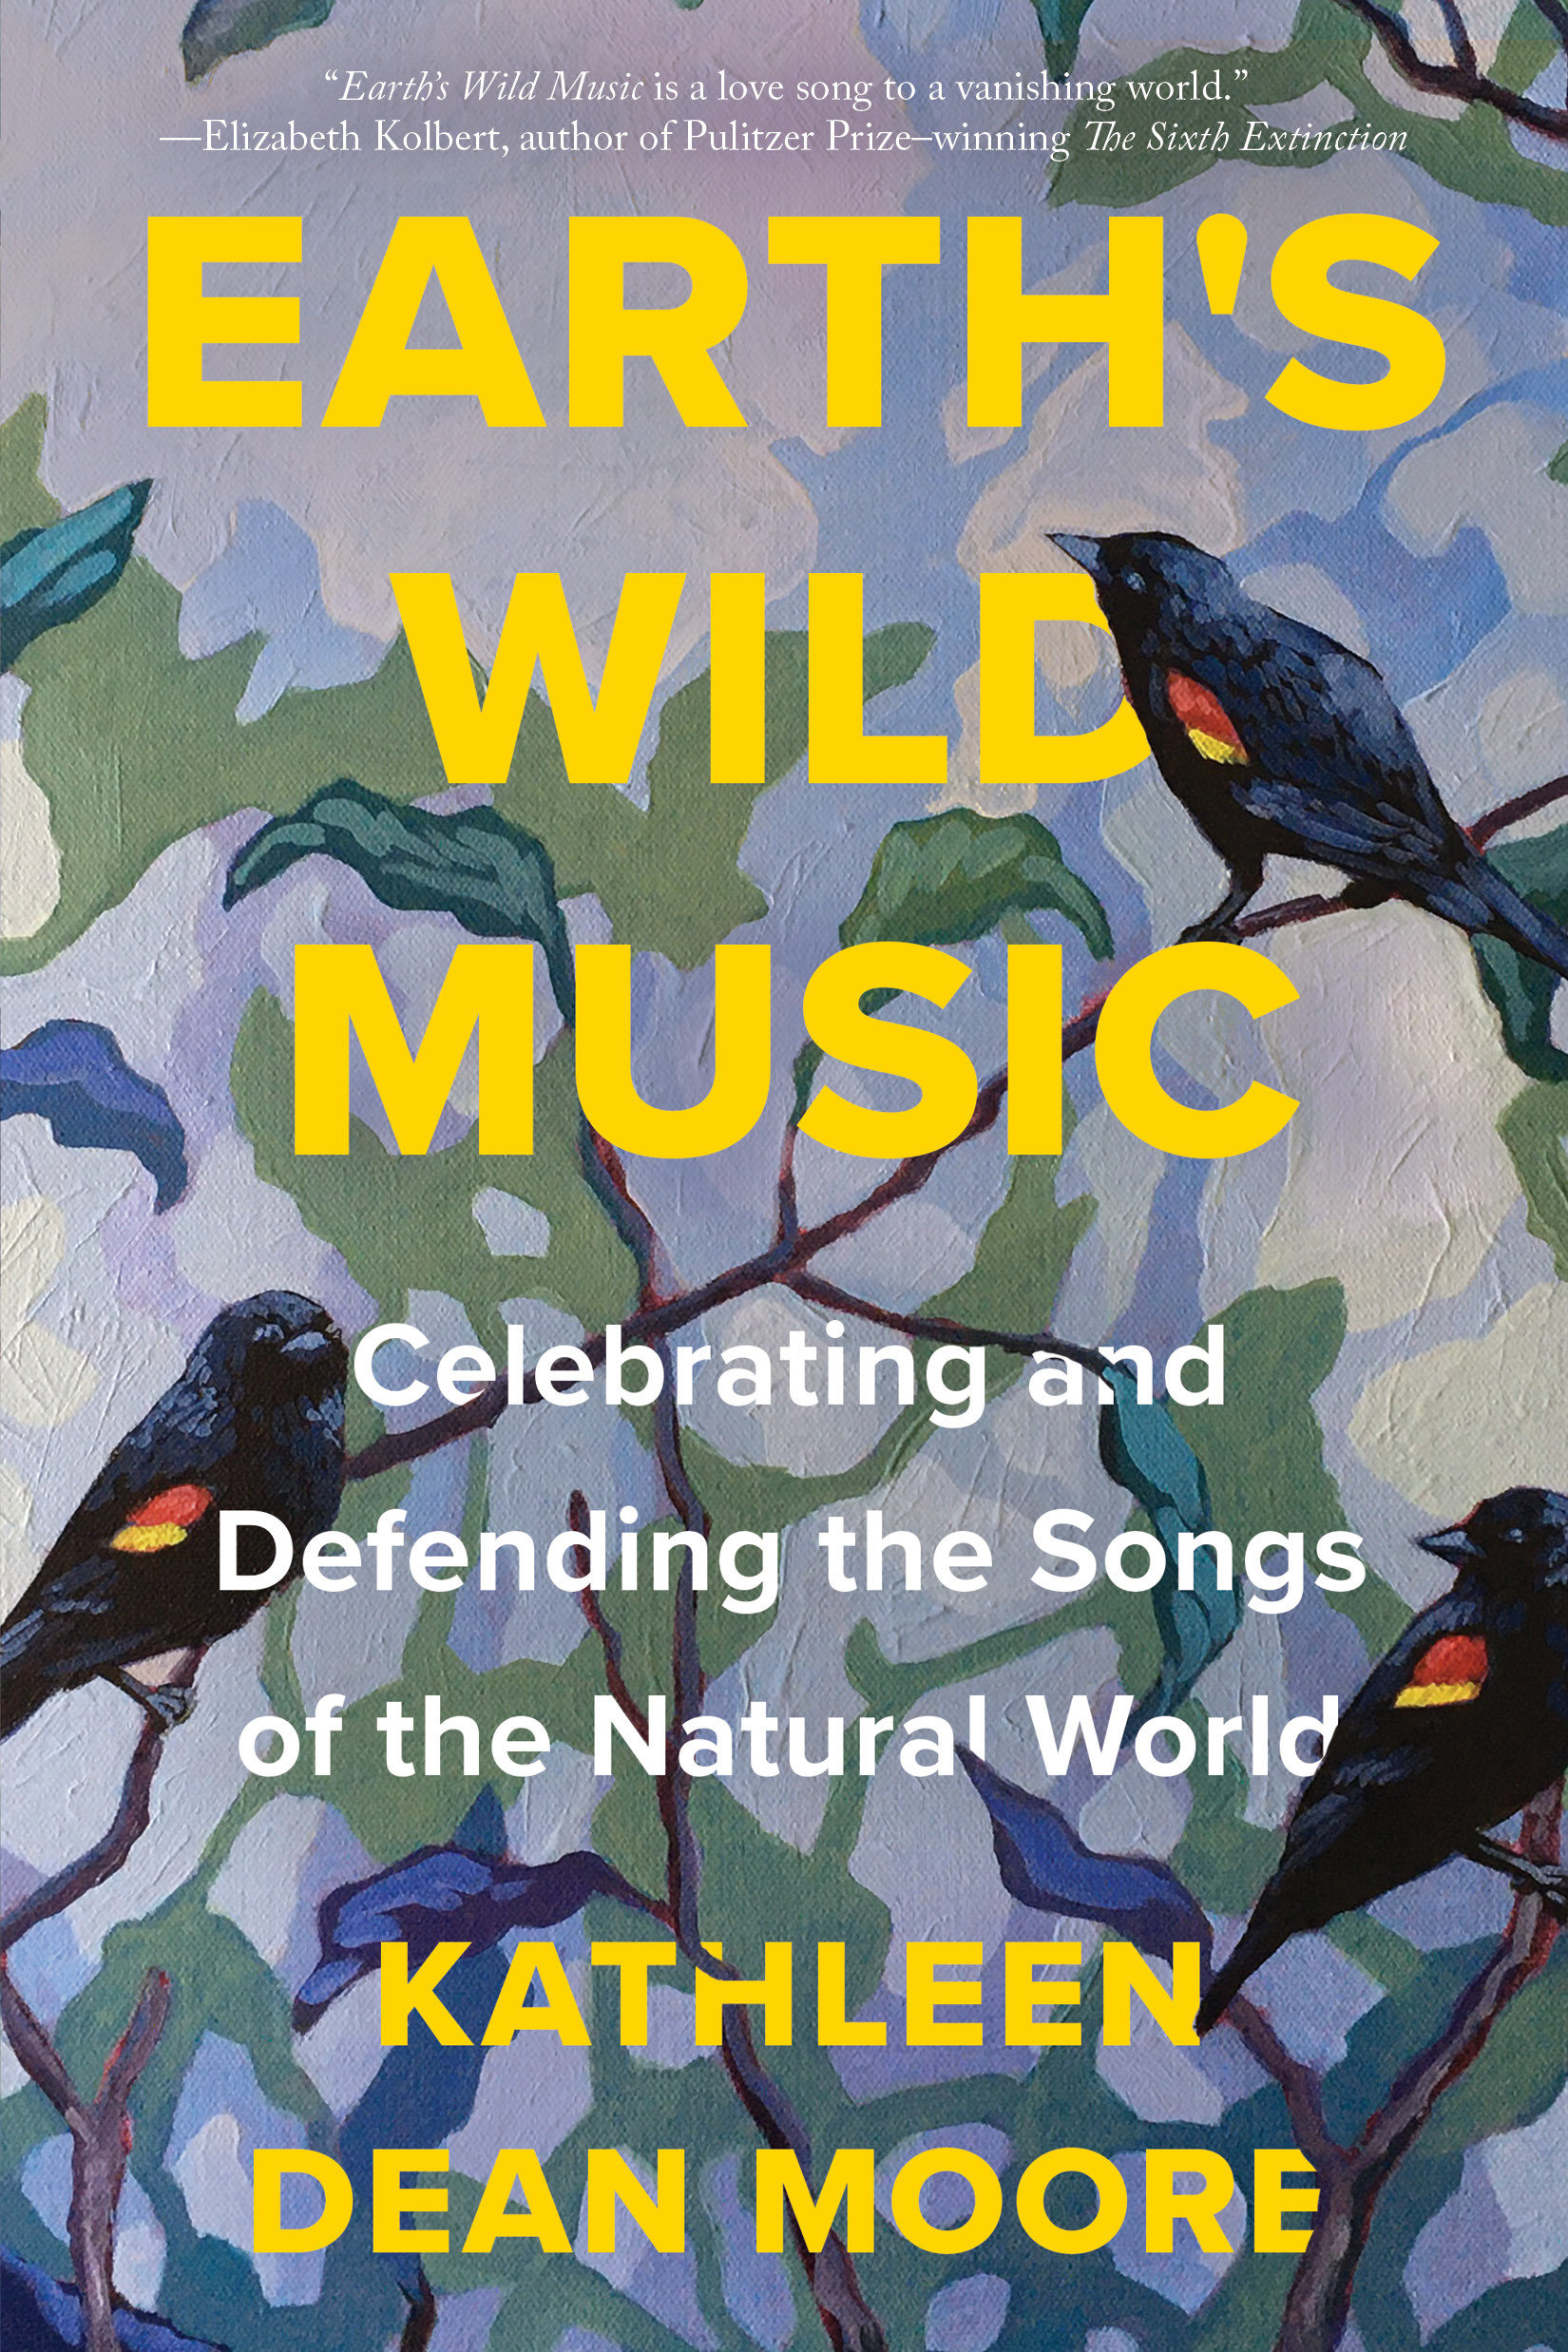 Earth's Wild Music Celebrating and Defending the Songs of the Natural World